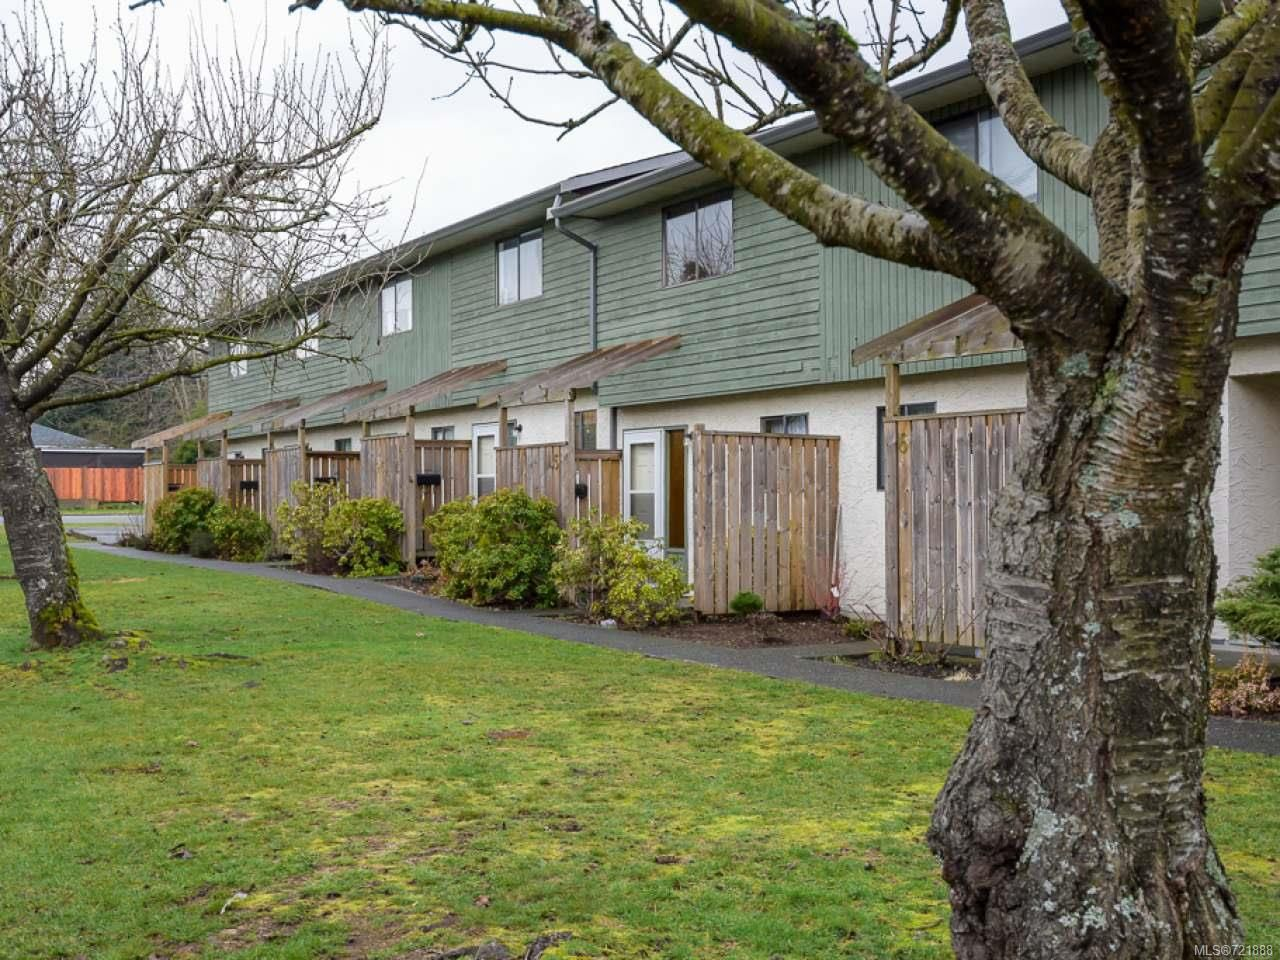 Main Photo: 4 951 17th St in COURTENAY: CV Courtenay City Row/Townhouse for sale (Comox Valley)  : MLS®# 721888